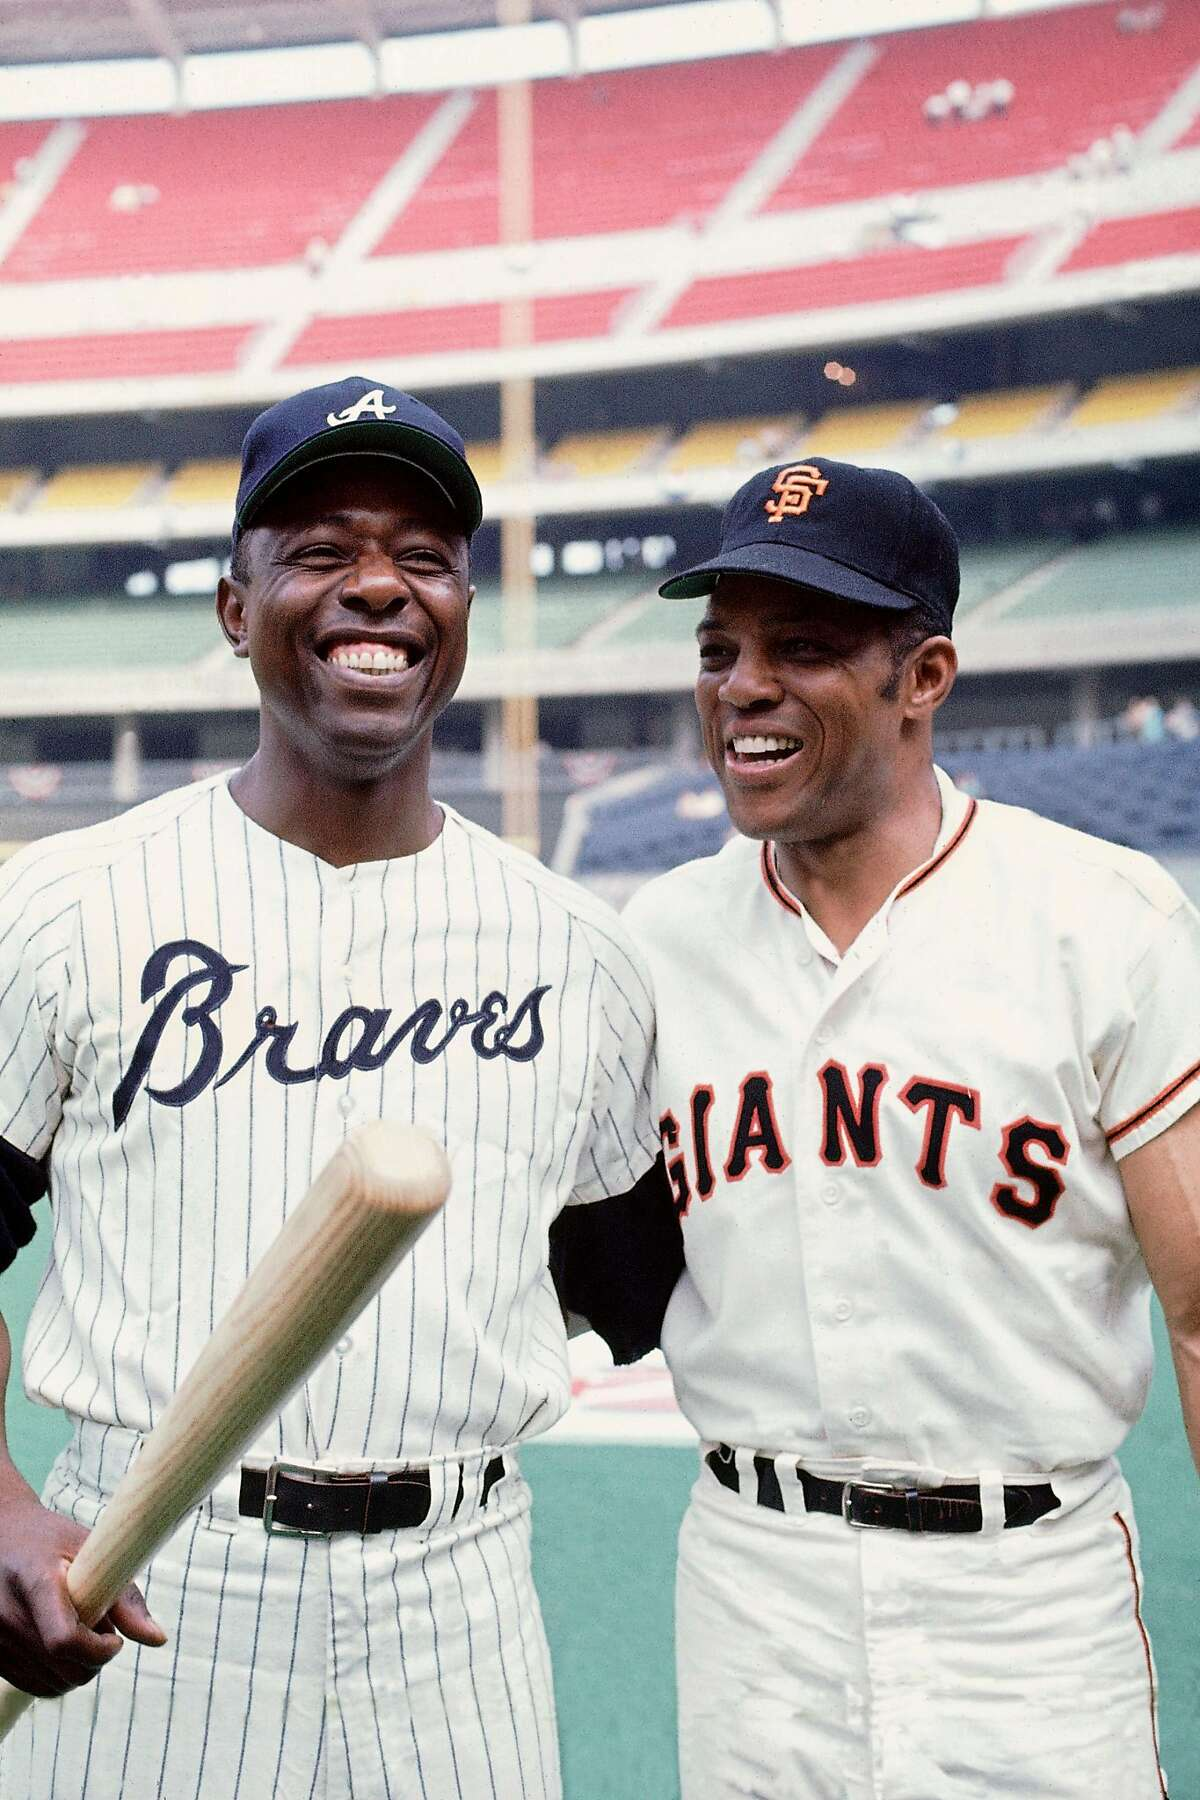 Hank Aaron (left) of the Atlanta Braves and Mays represented the National League in the 1970 All-Star Game.